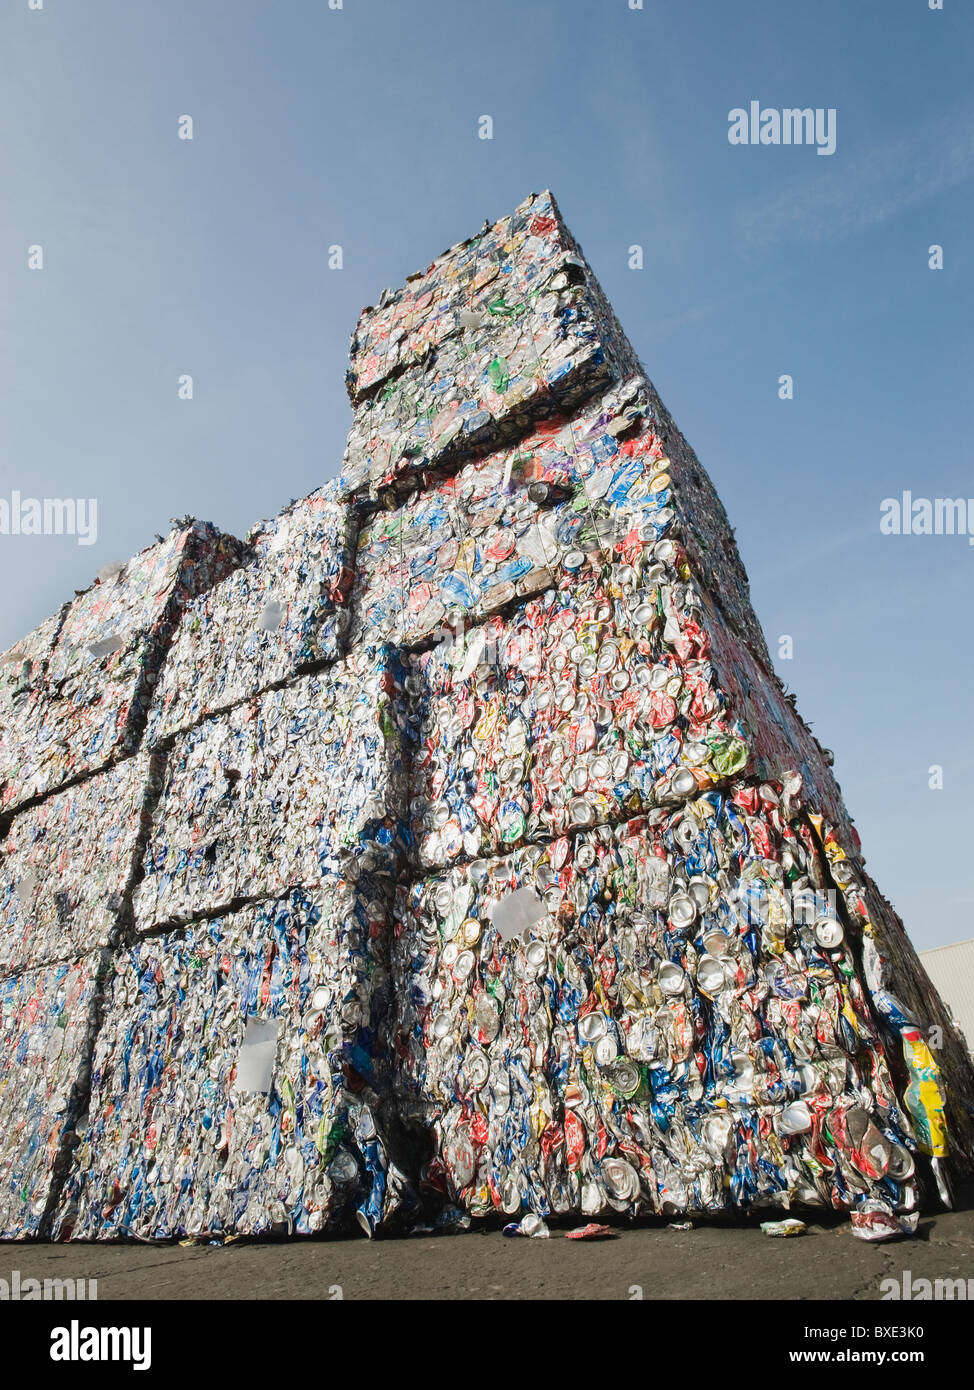 Stacks of crushed aluminum cans - Stock Image